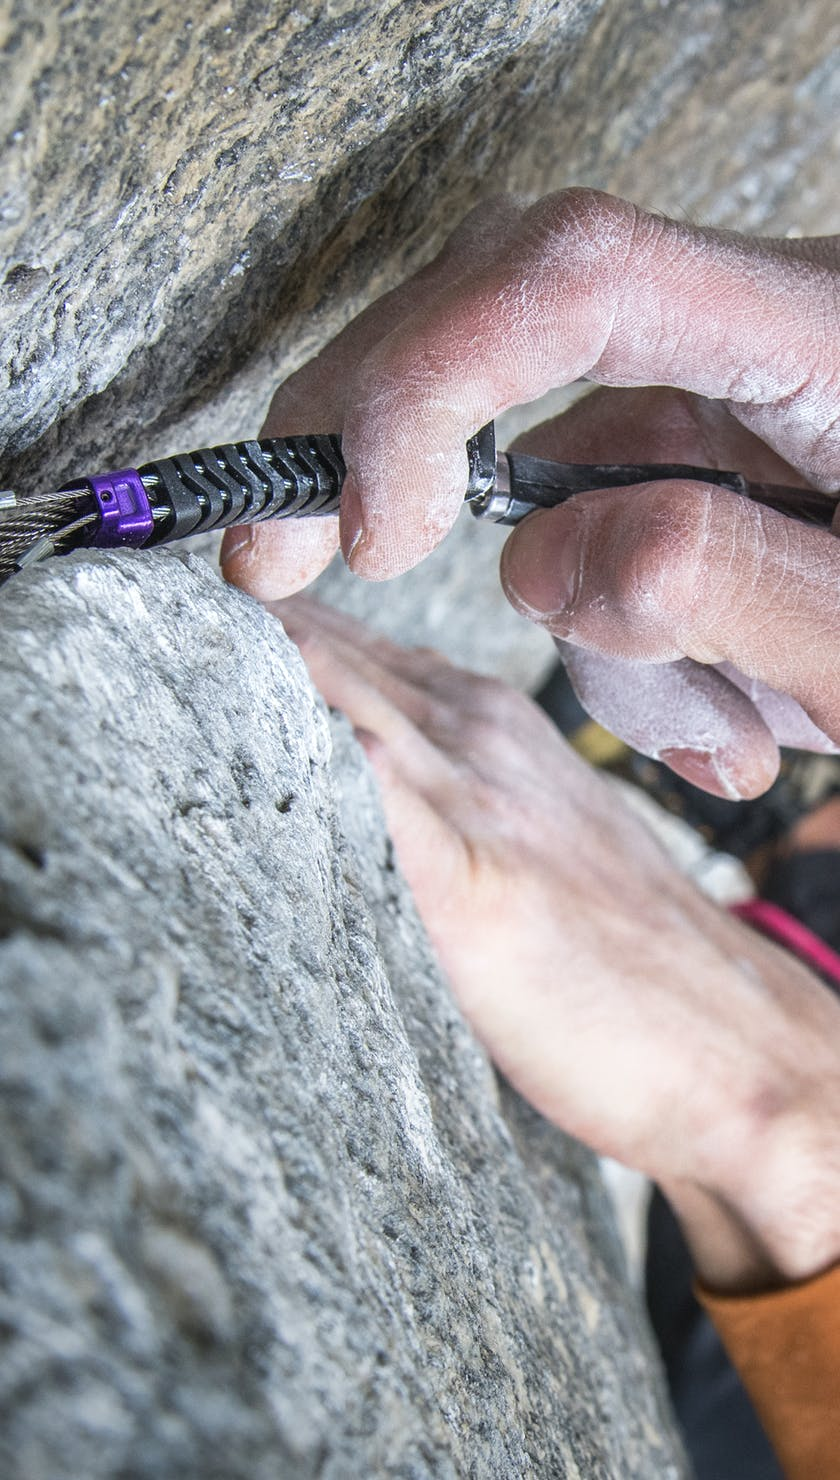 Climber placing a Z4 cam in a crack